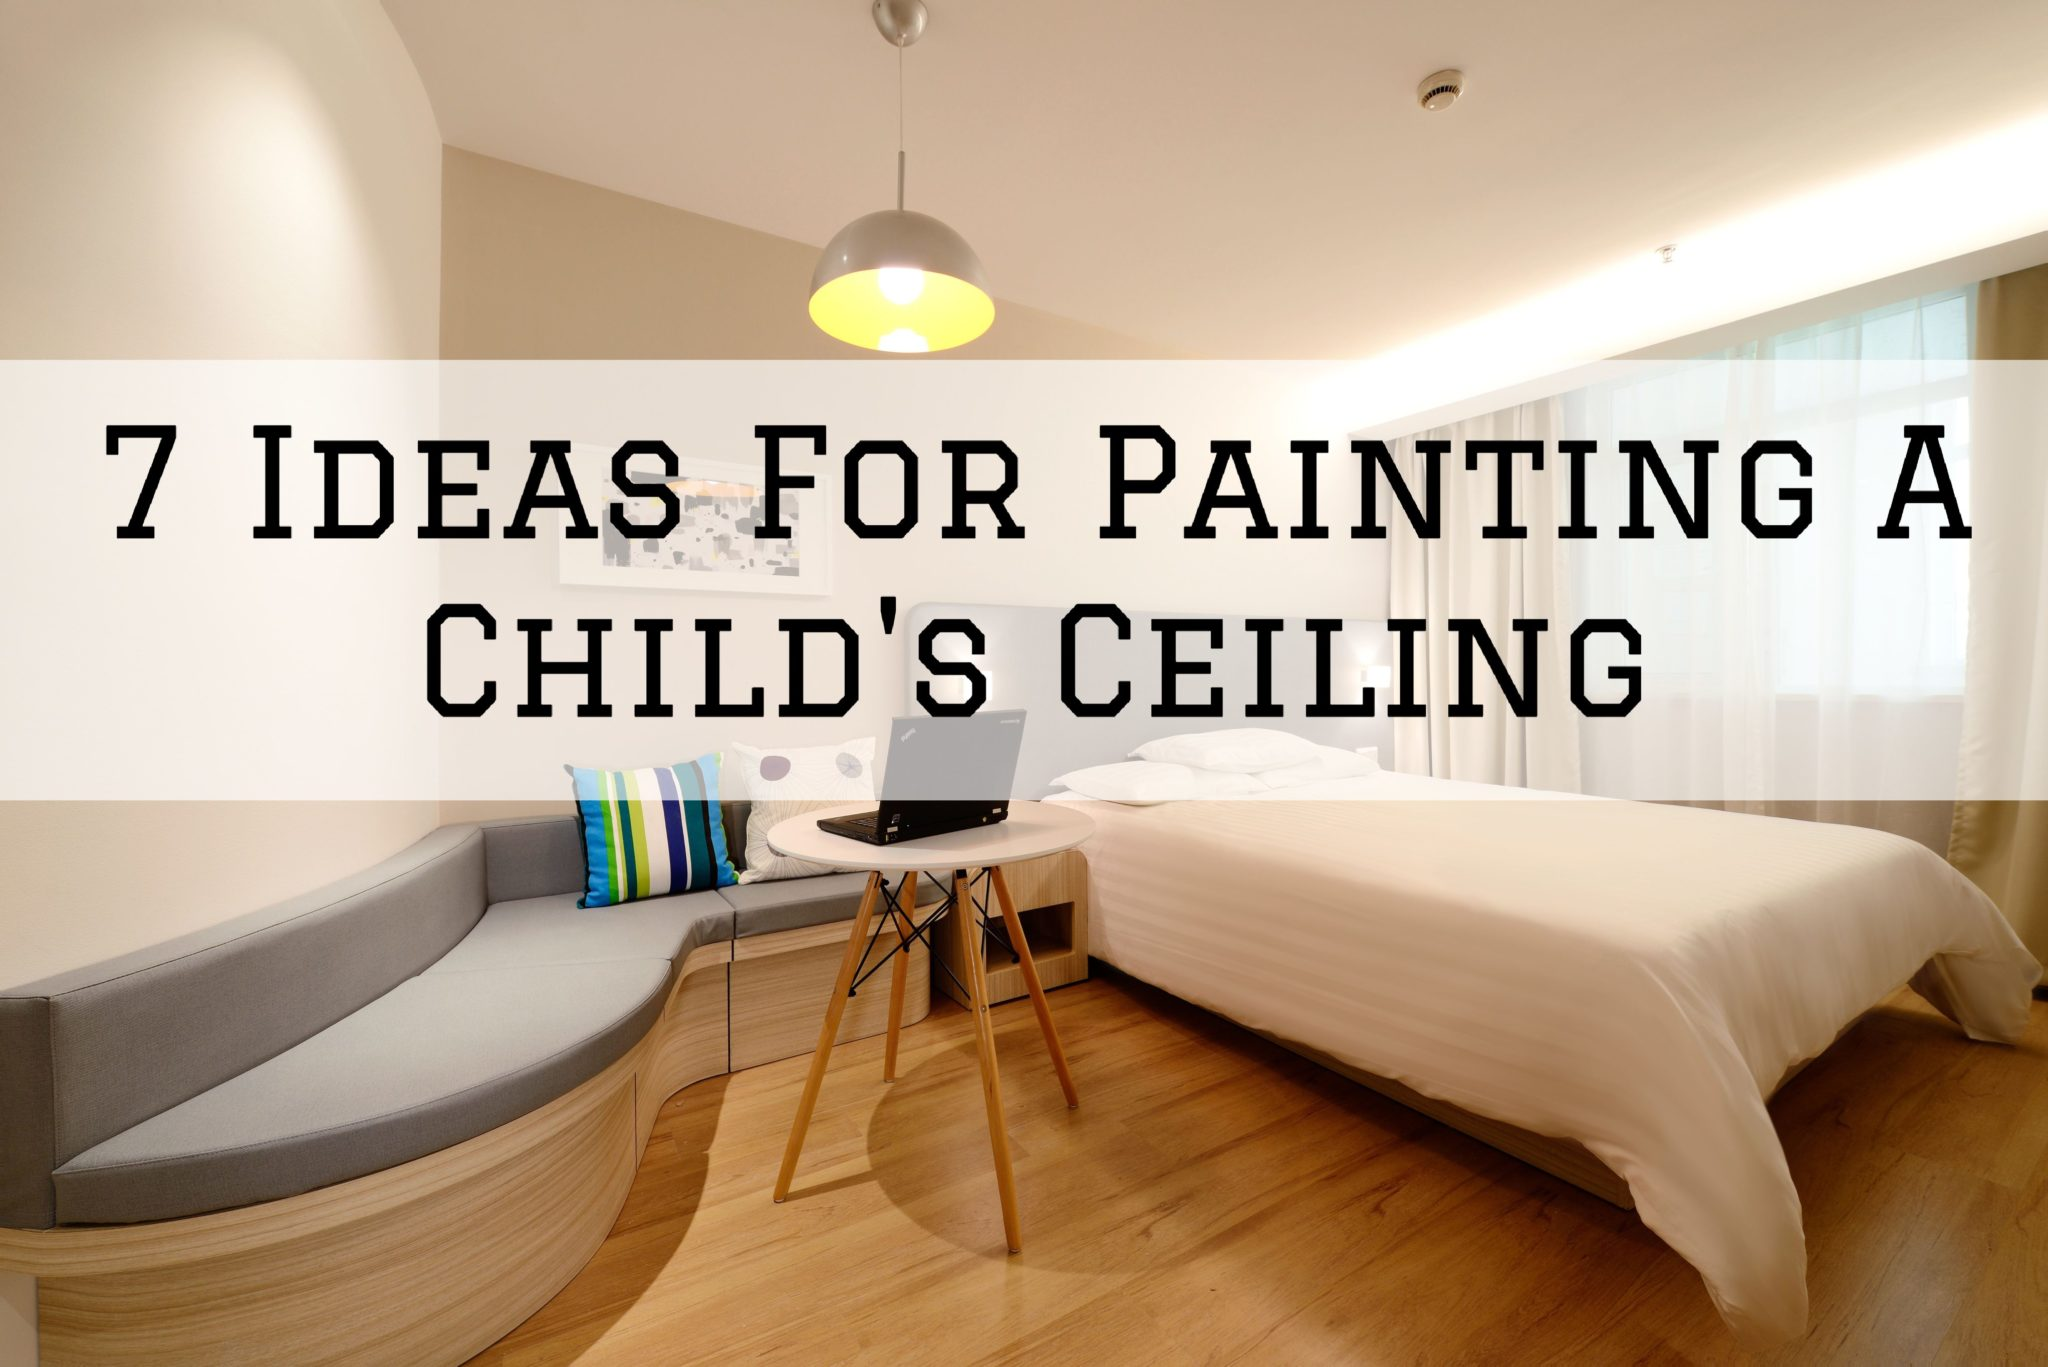 7 Ideas For Painting A Child's Ceiling in Omaha, NE